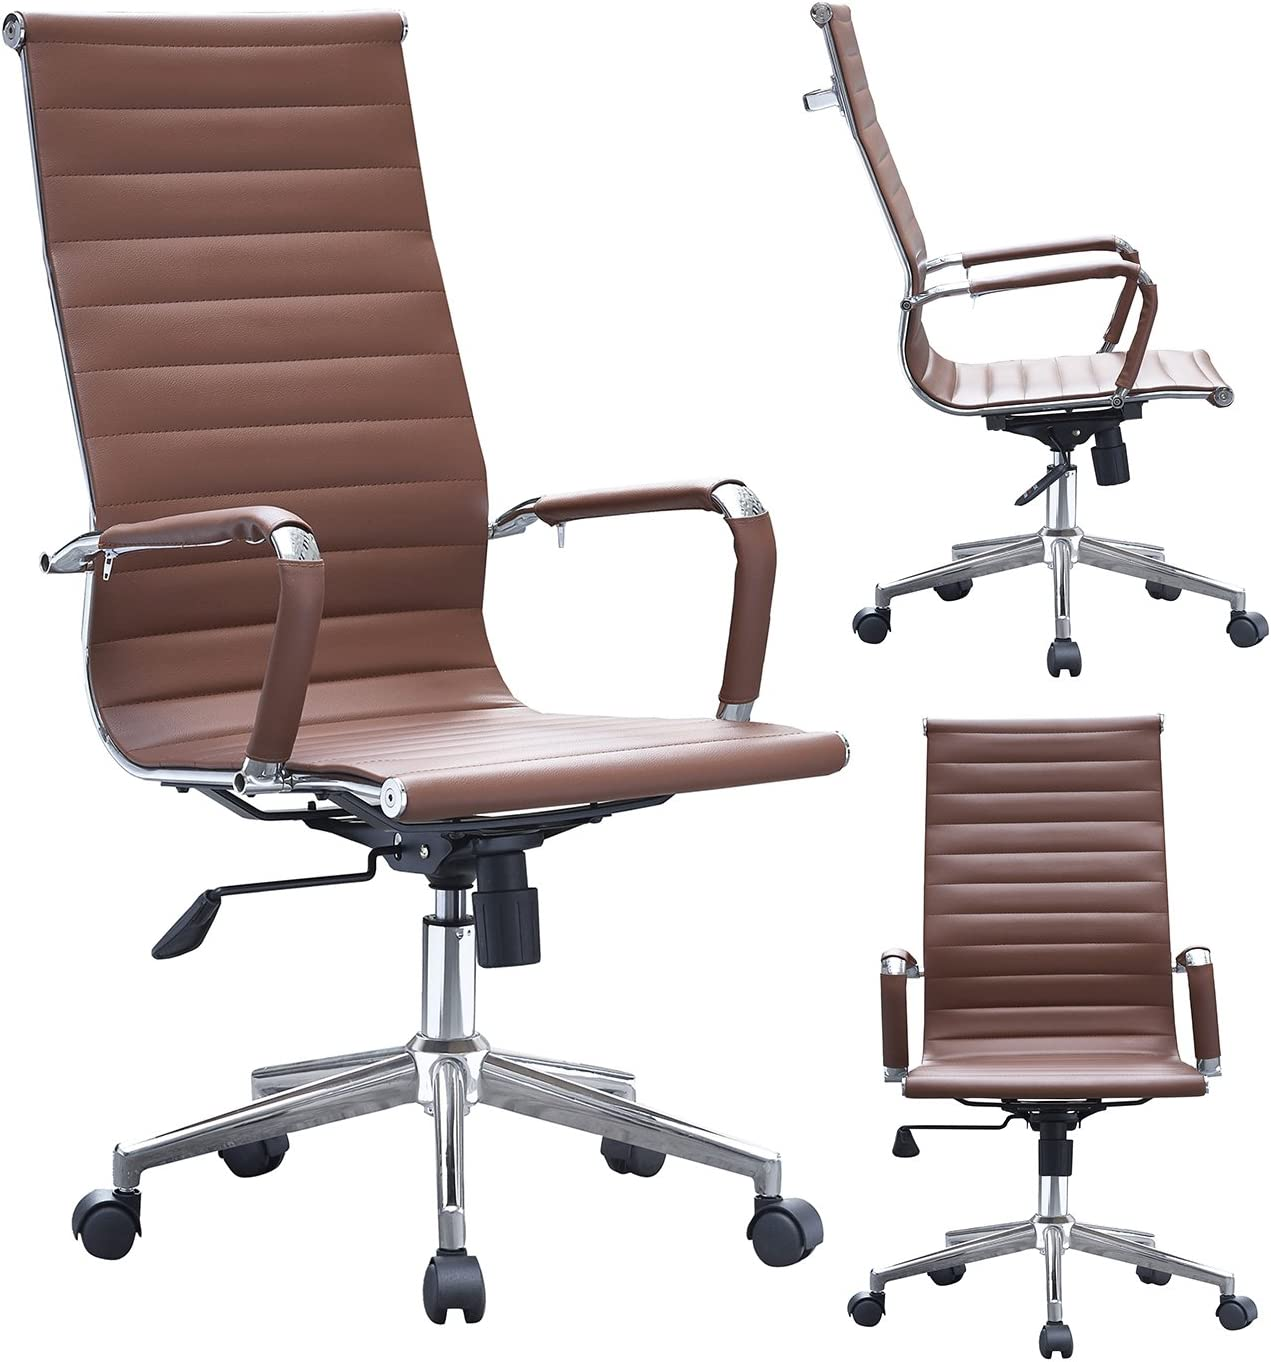 2xhome – Modern High Back Tall Ribbed PU Leather Swivel Tilt Adjustable Chair Designer Boss Executive Management Manager Office Conference Room Work Task Computer Brown